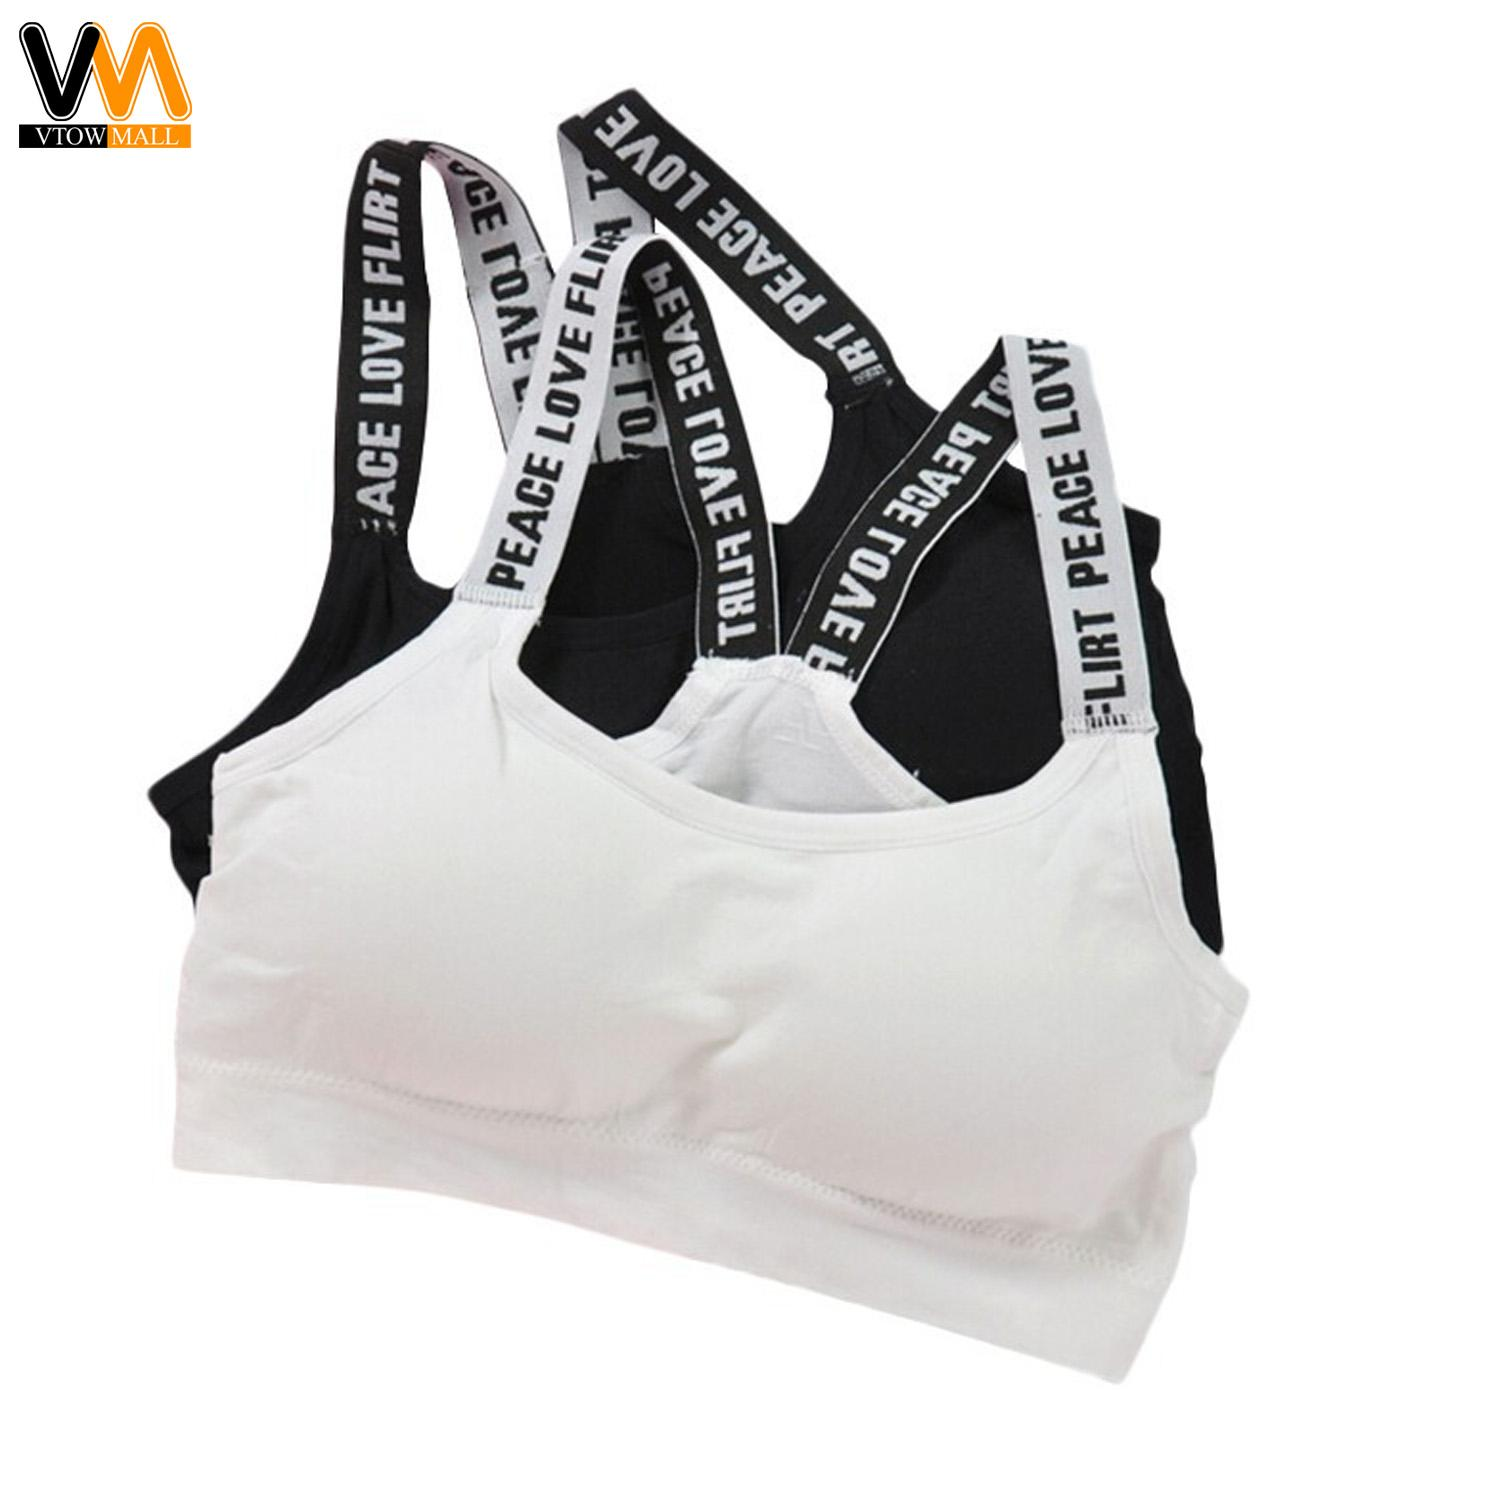 2299948954 Sports Clothing For Women for sale - Womens Sports Attire online ...